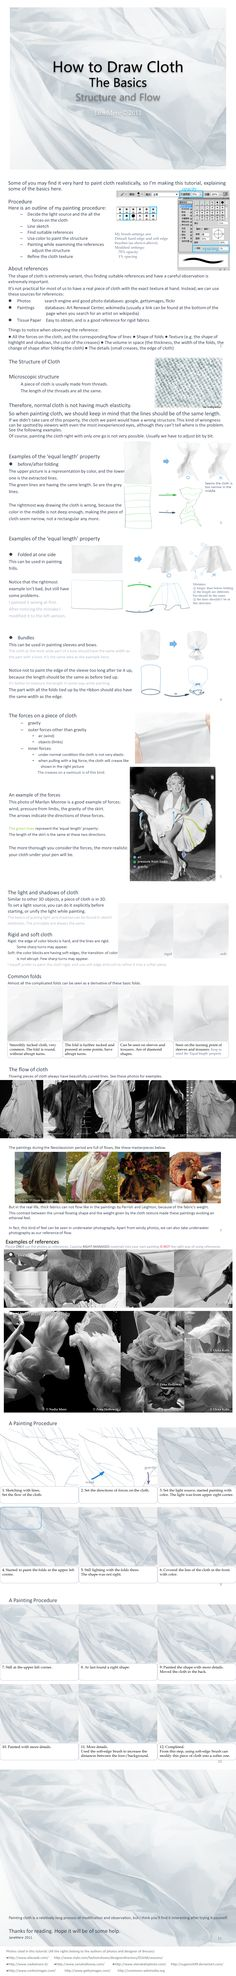 How to Draw Cloth - The Basics by ~JaneMere ✤ || CHARACTER DESIGN REFERENCES | キャラクターデザイン • Find more at https://www.facebook.com/CharacterDesignReferences if you're looking for: #lineart #art #character #design #illustration #expression #animation #drawing #archive #reference #traditional #sketch #pose #settei #gestures #how #to #tutorial #comics #conceptart #modelsheet #cartoon #wrinkles #folding #clothing #costumes #ruffles #dress #clothes #fabric #folds || ✤